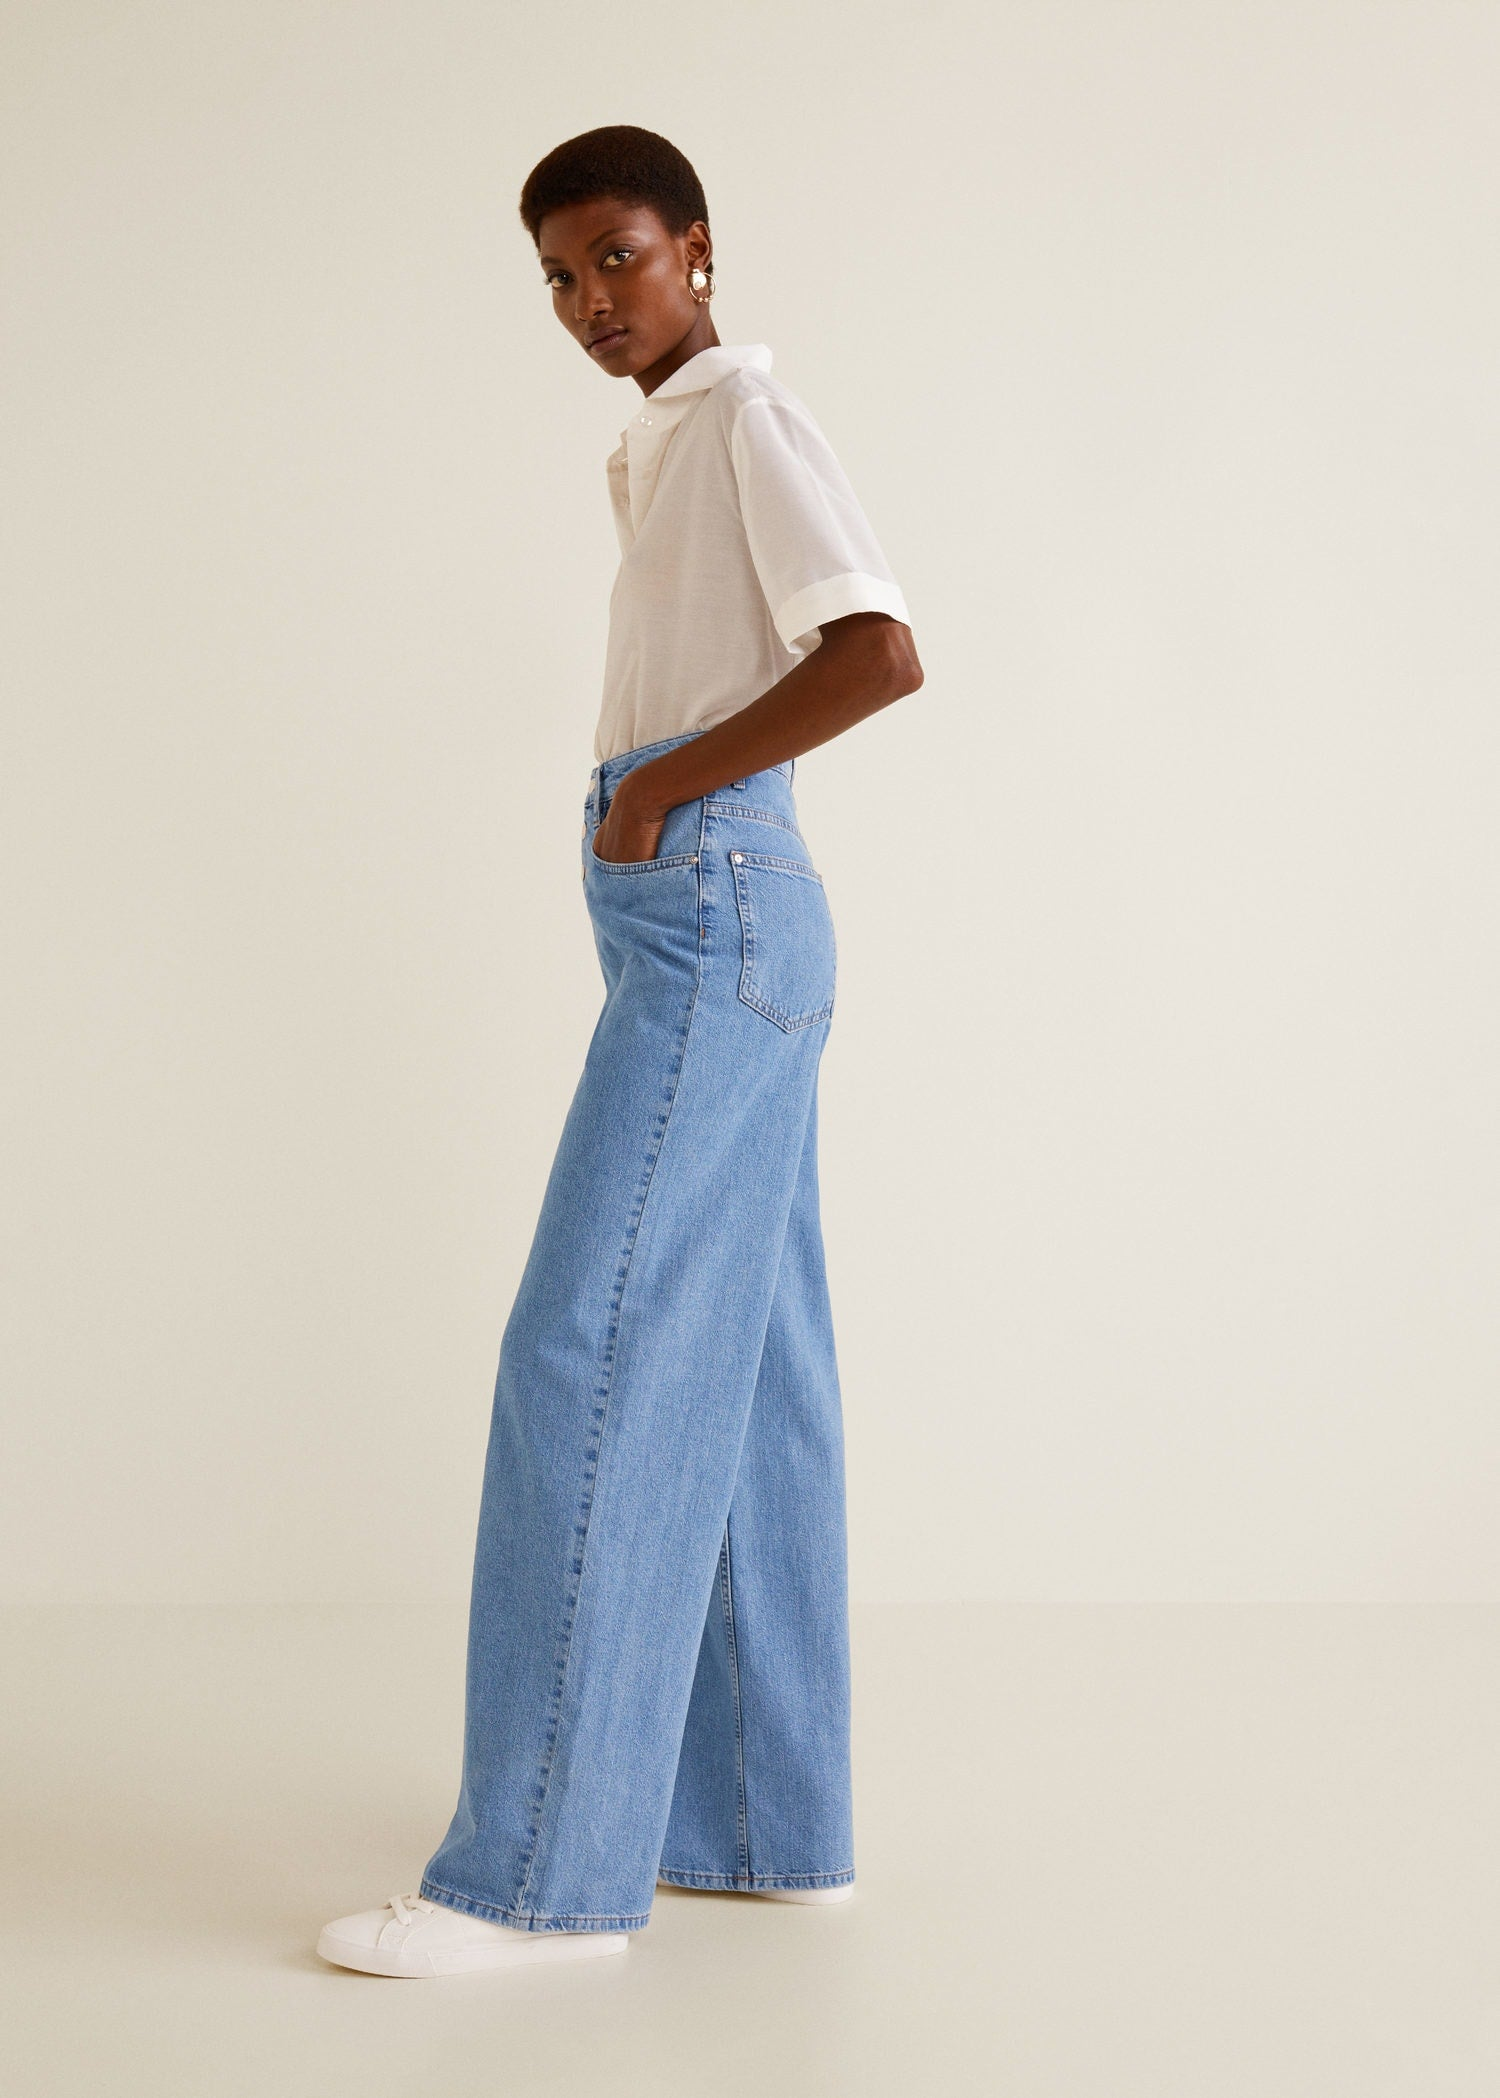 8aab33f043b8 Denim & Jean Trends That Are Going To Be Huge In 2019